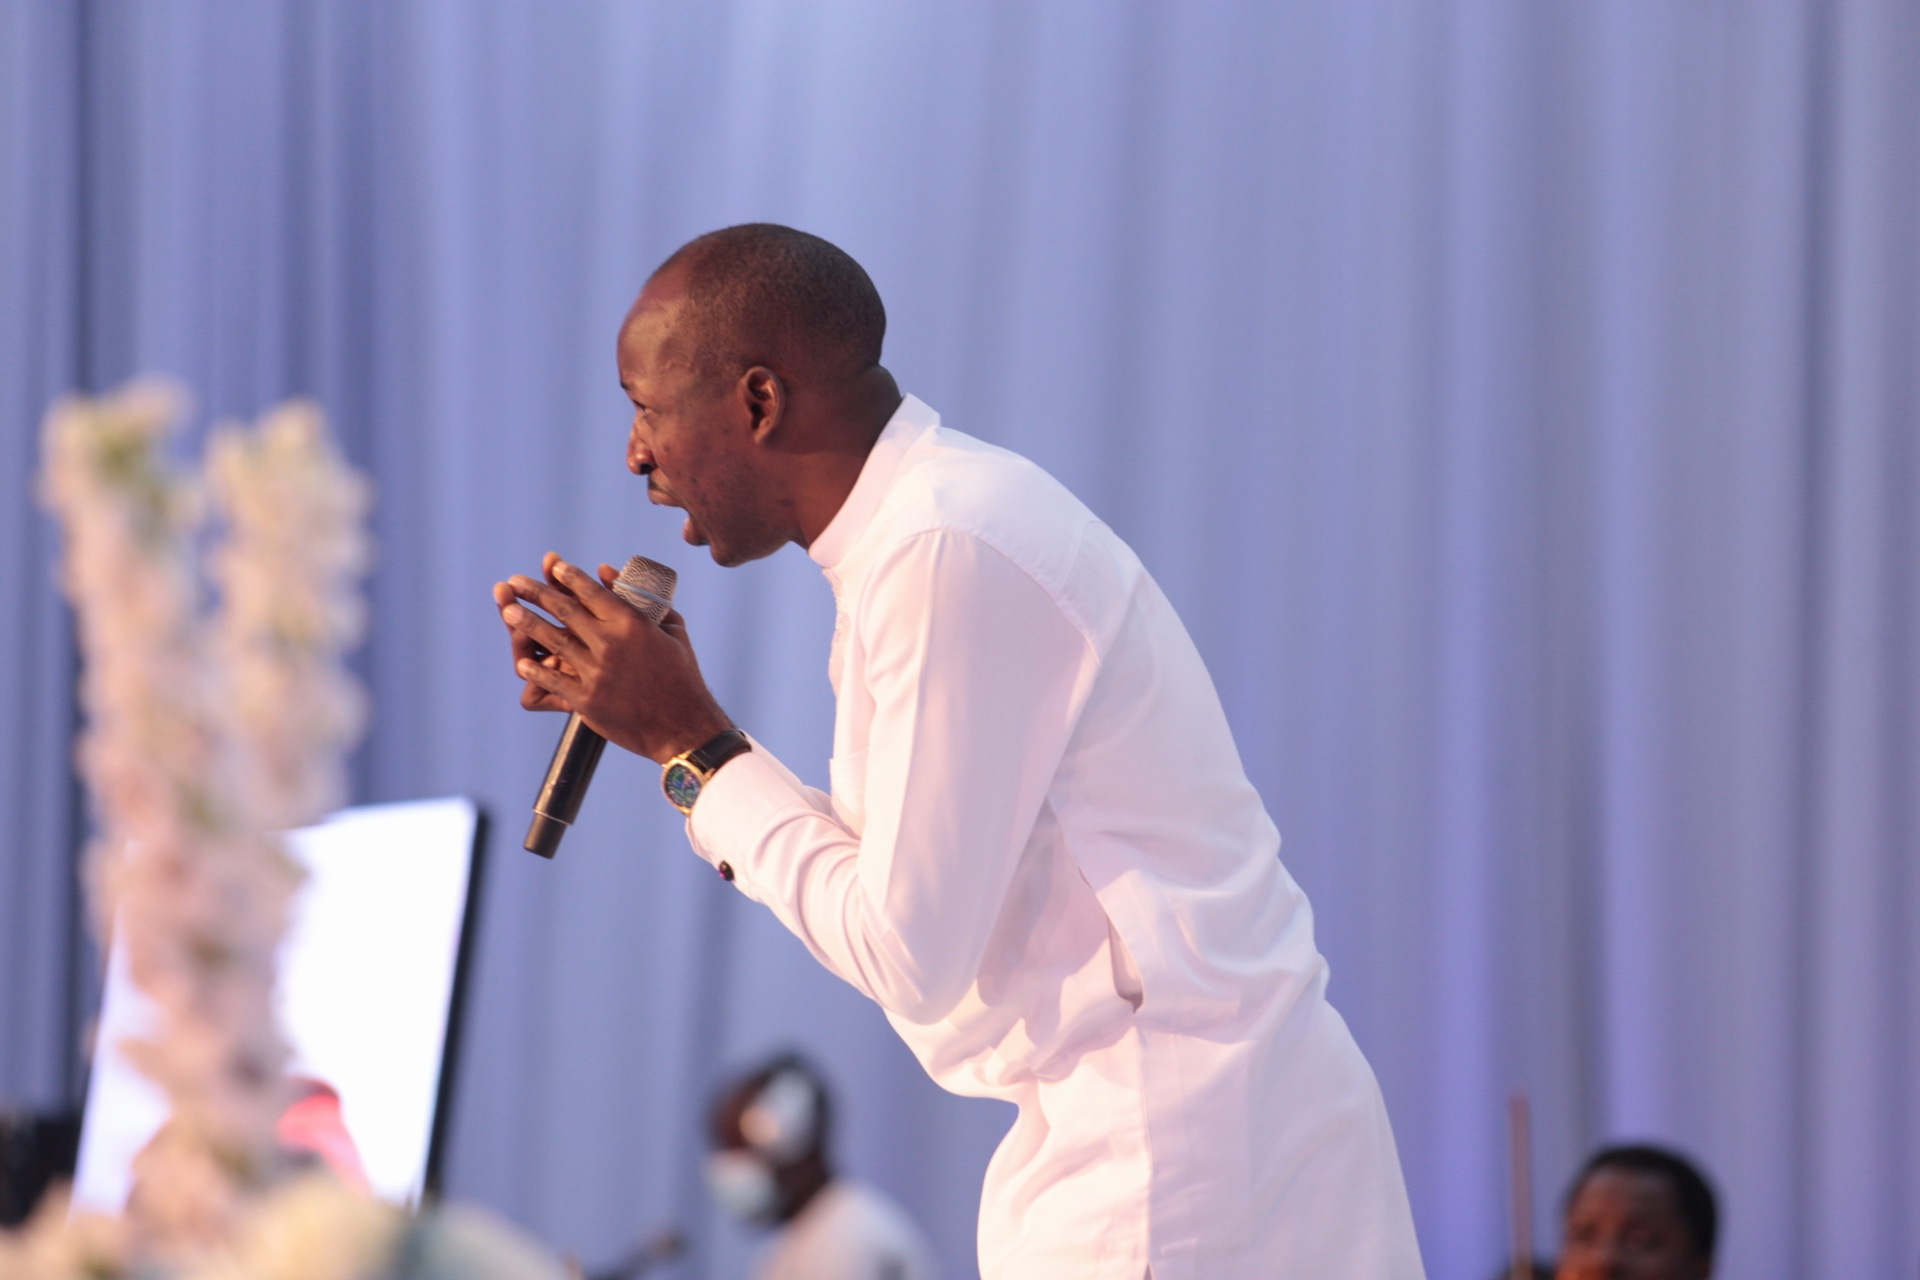 One of the ministers at the Farewell Service of Pastor Dare Adeboye, at the Youth Centre, Redemption Camp